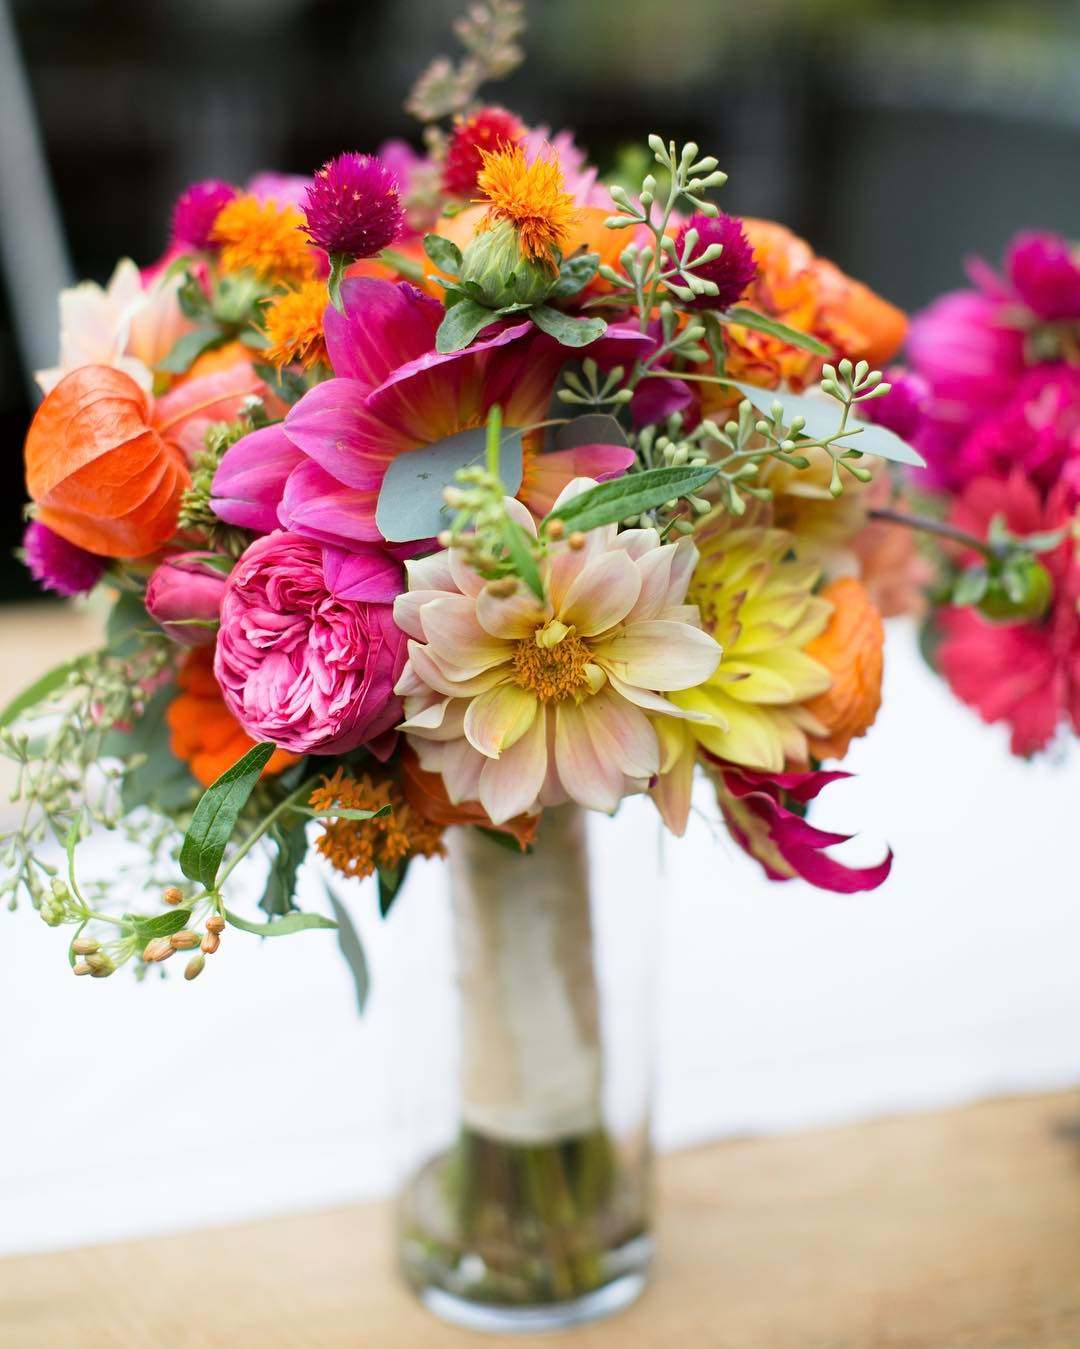 {sweetness} photo | @authenticeyephoto  #bouquet #barnwedding #rusticelegance #dahlias #gardenroses #gomphrena #seededeucalyptus #gloriosa #safflower #ranunculus #coral #pink #orange #lotusfloraldesigns #weddingflorist